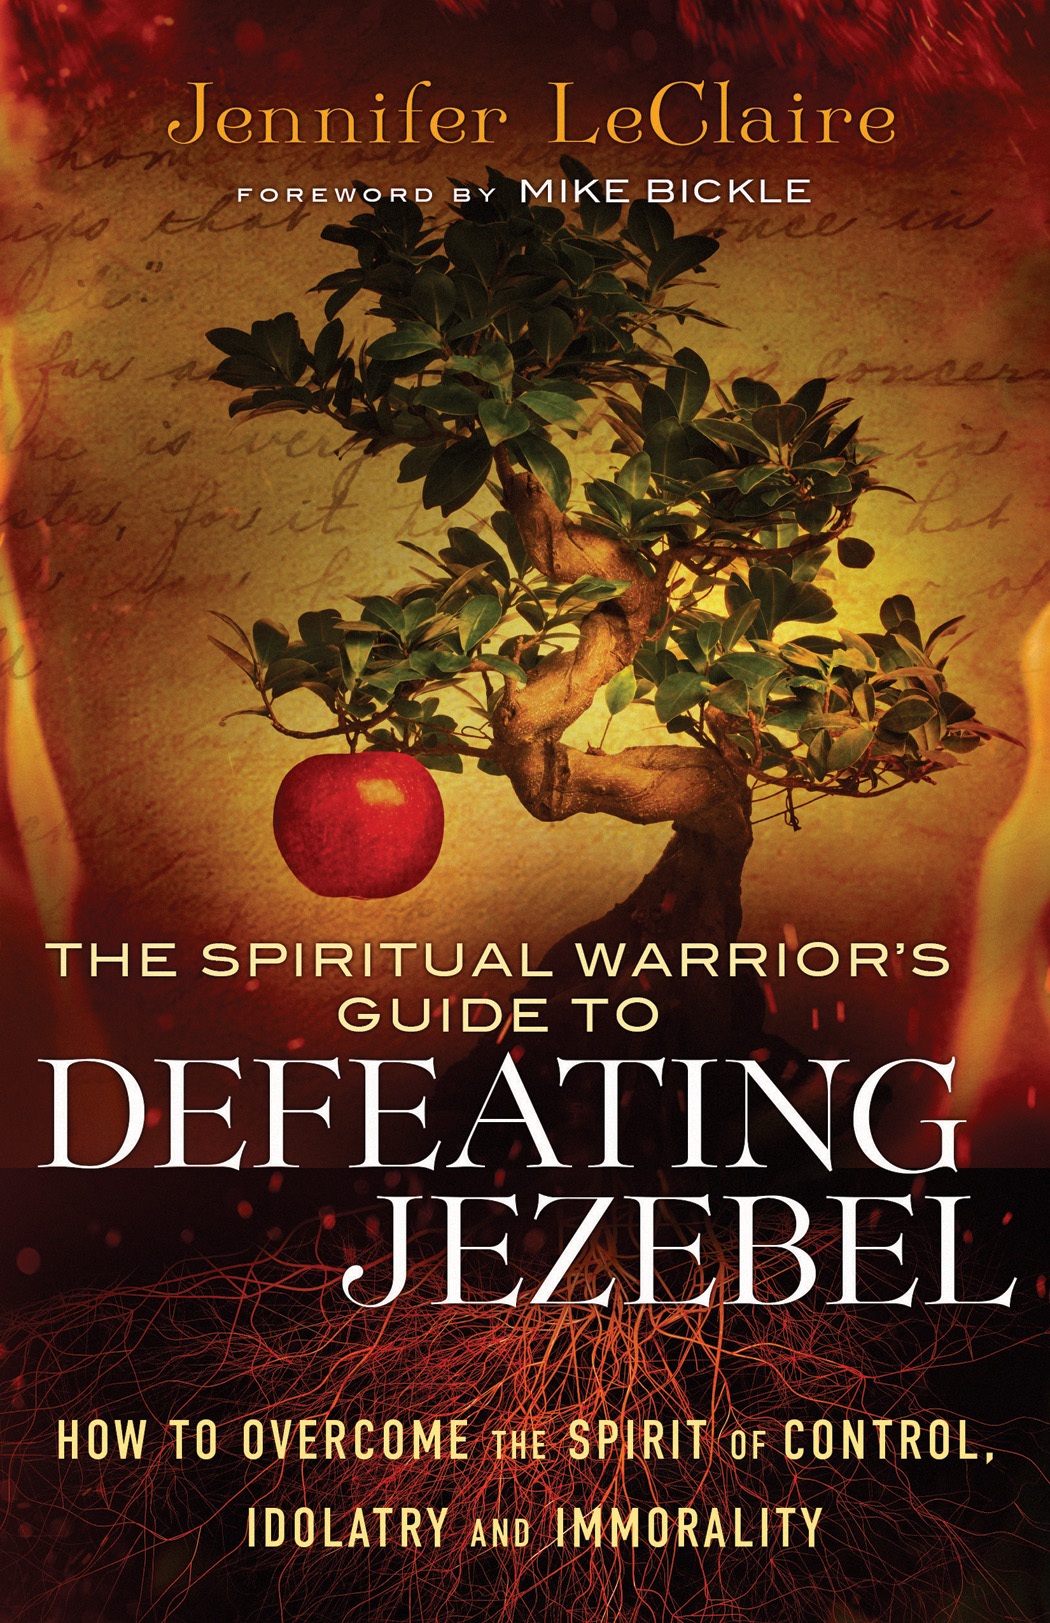 Defeating Jezebel: How to Overcome the Spirit of Control, Idolatry and Immorality